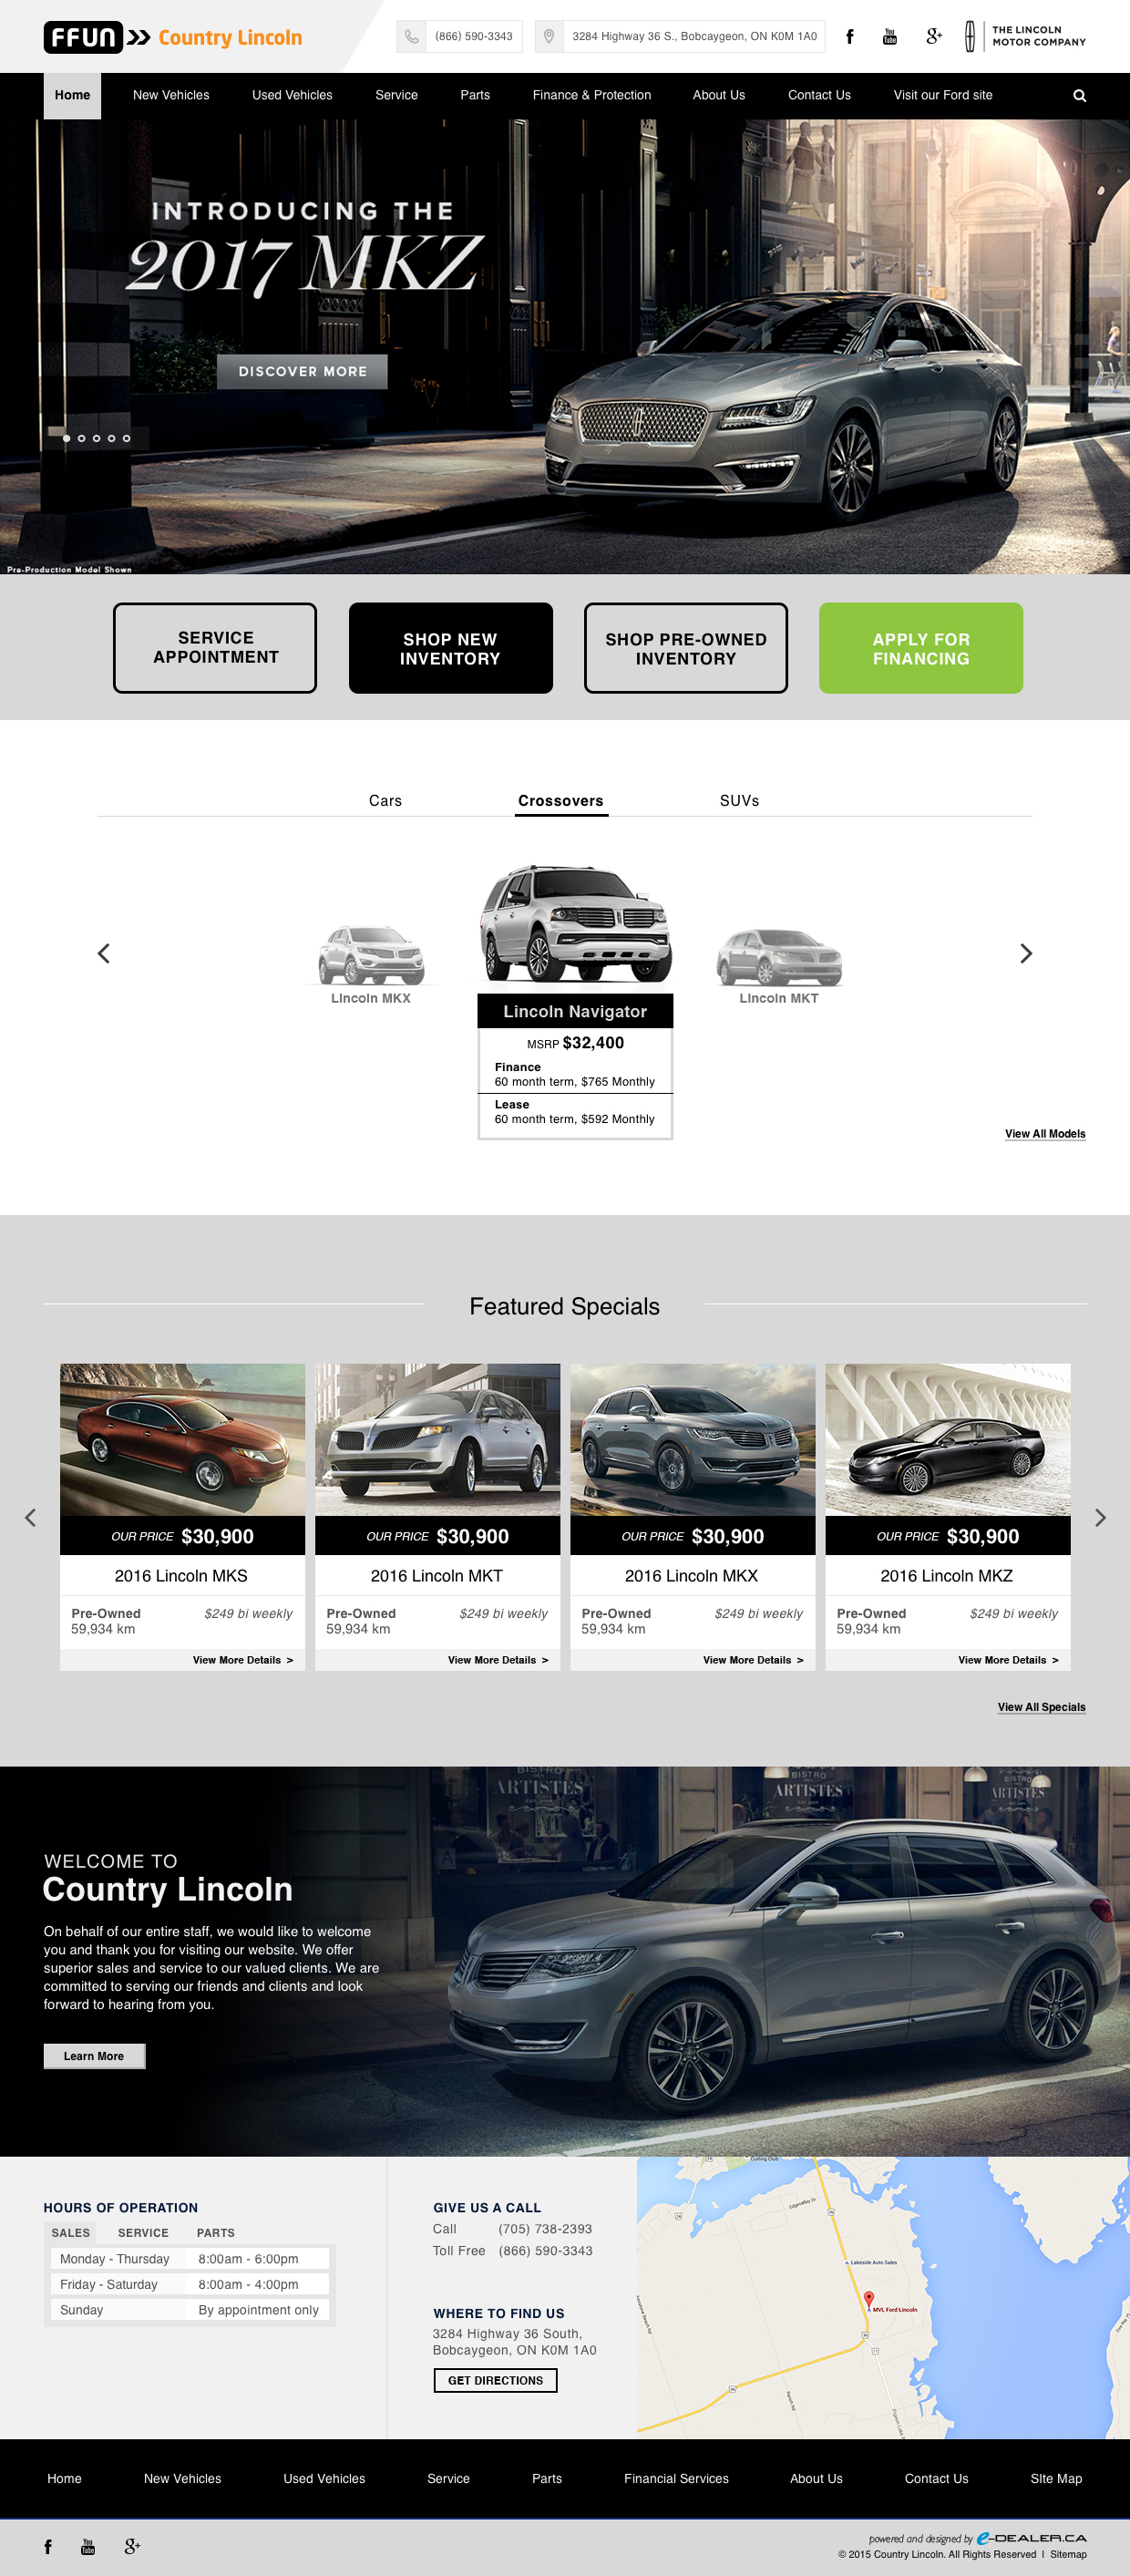 CountryLincoln-Design-Final